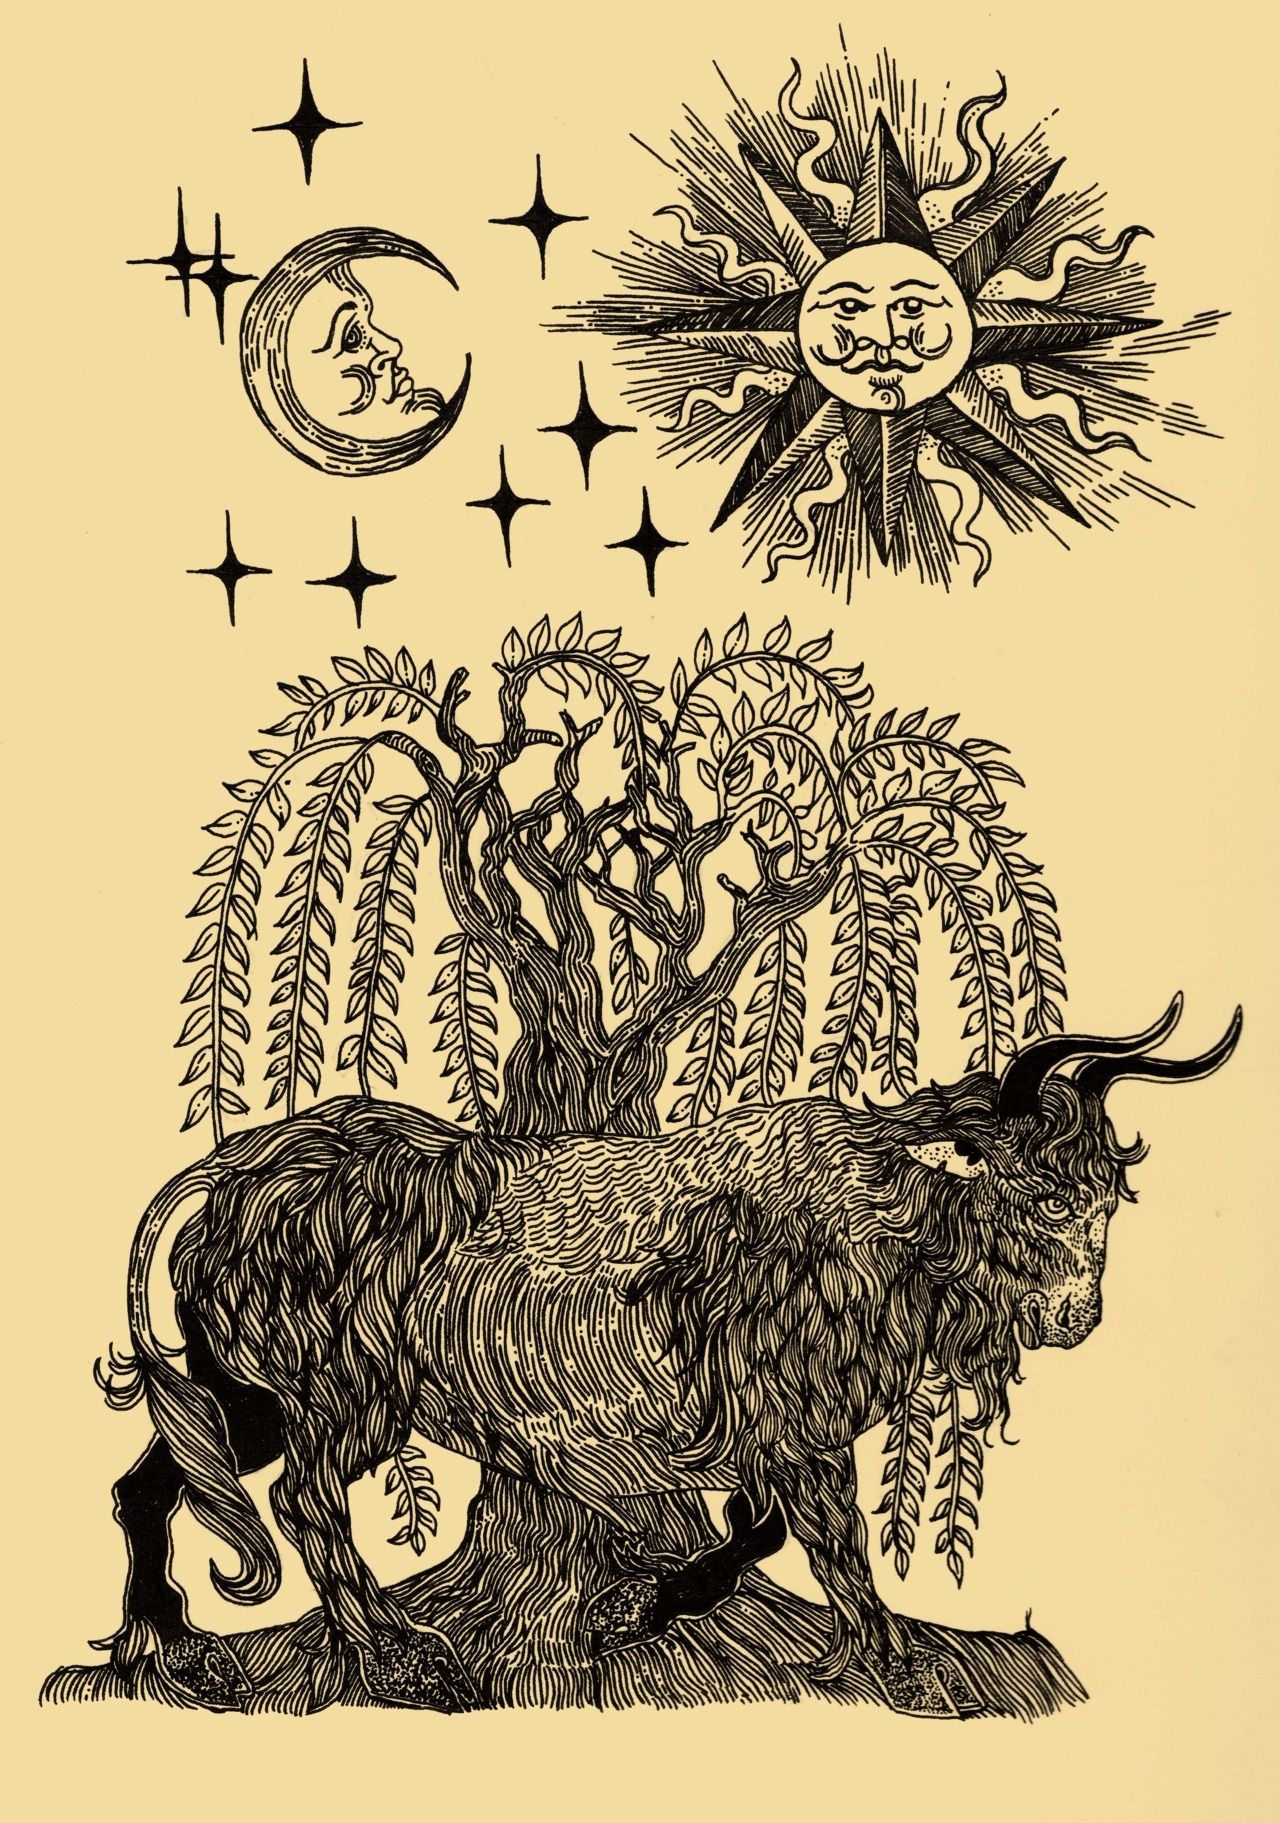 Ox and Willow | Curiosities | Pinterest | Illustrations